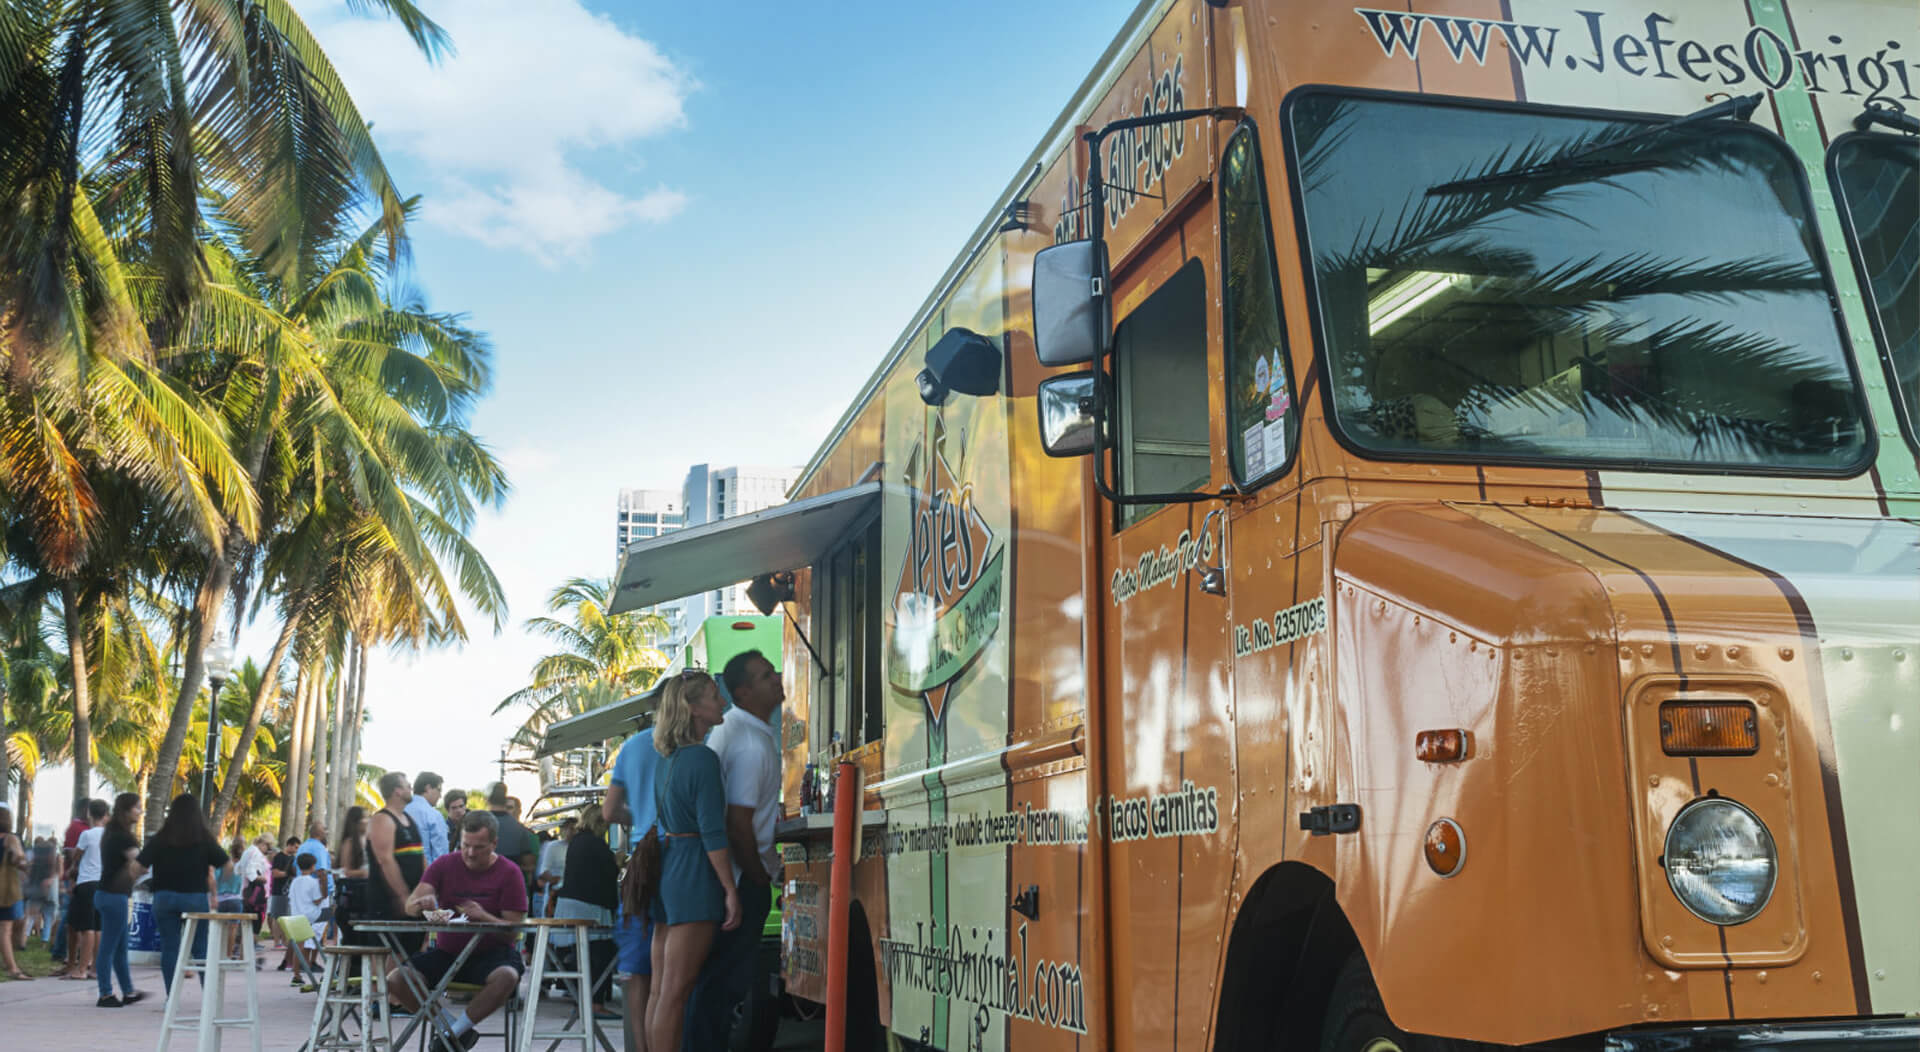 A food truck convoy serving a variety of delicious food making business at Miami Beach on a quiet Wednesday afternoon at a food truck fair